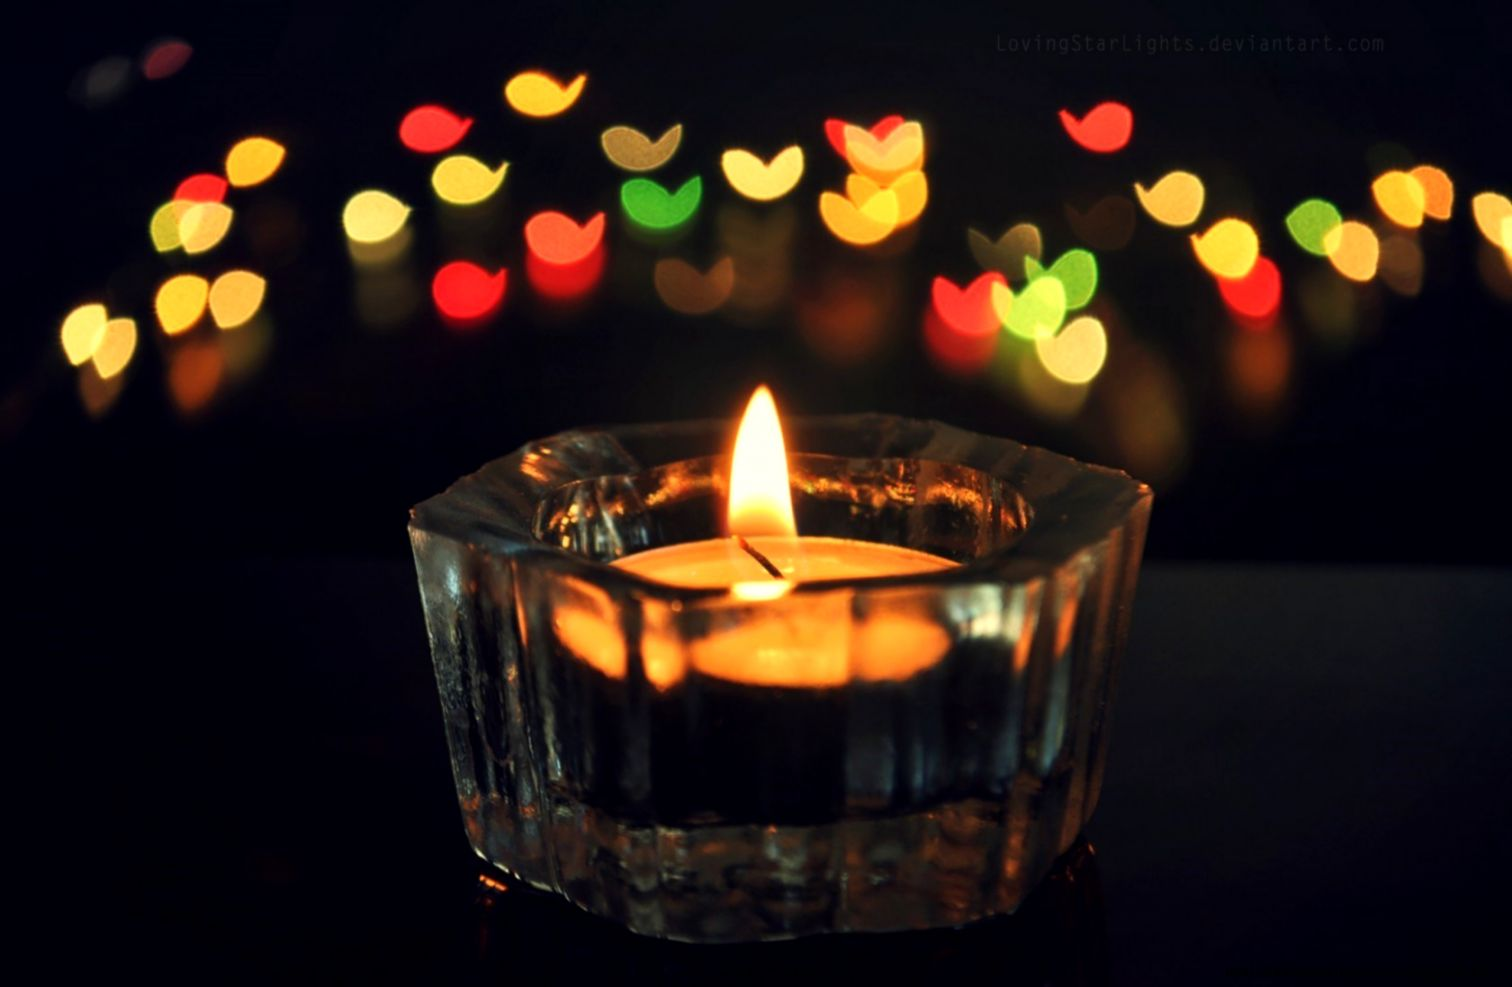 Wallpaper Of Candle Light